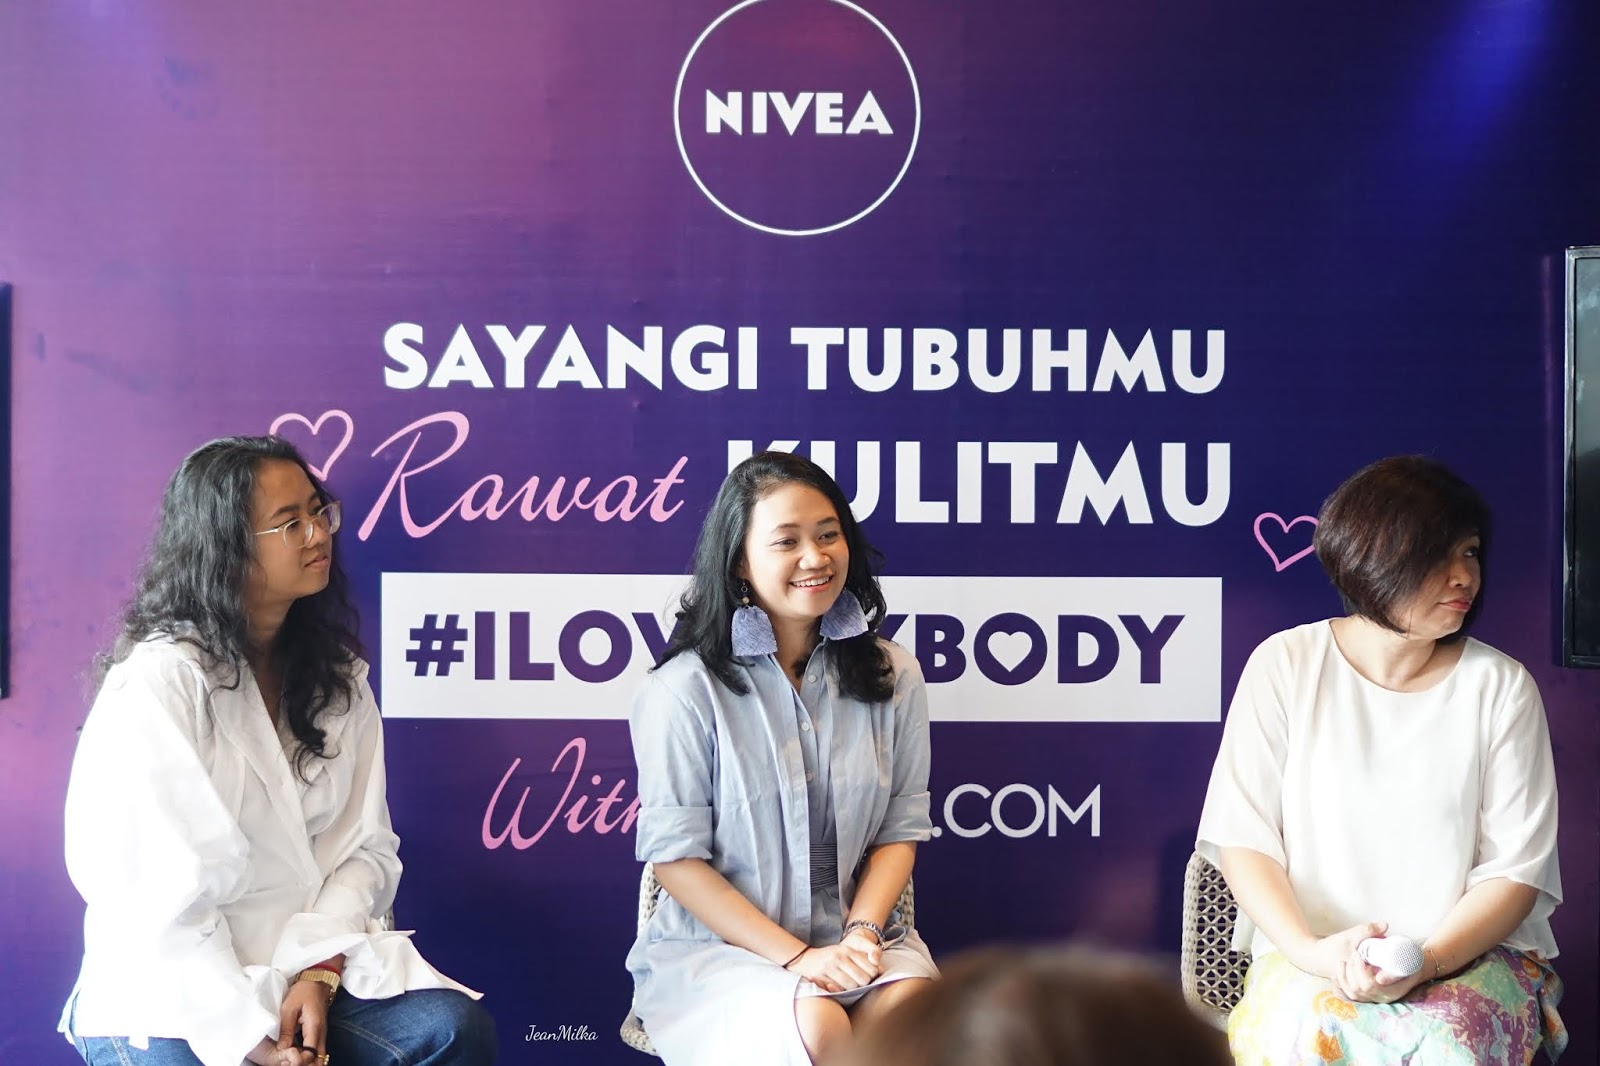 nivea, nivea indonesia, nivea body serum, lotion, body lotion, body serum, nivea body lotion, review, review nivea, female daily, event, beauty event, jakarta